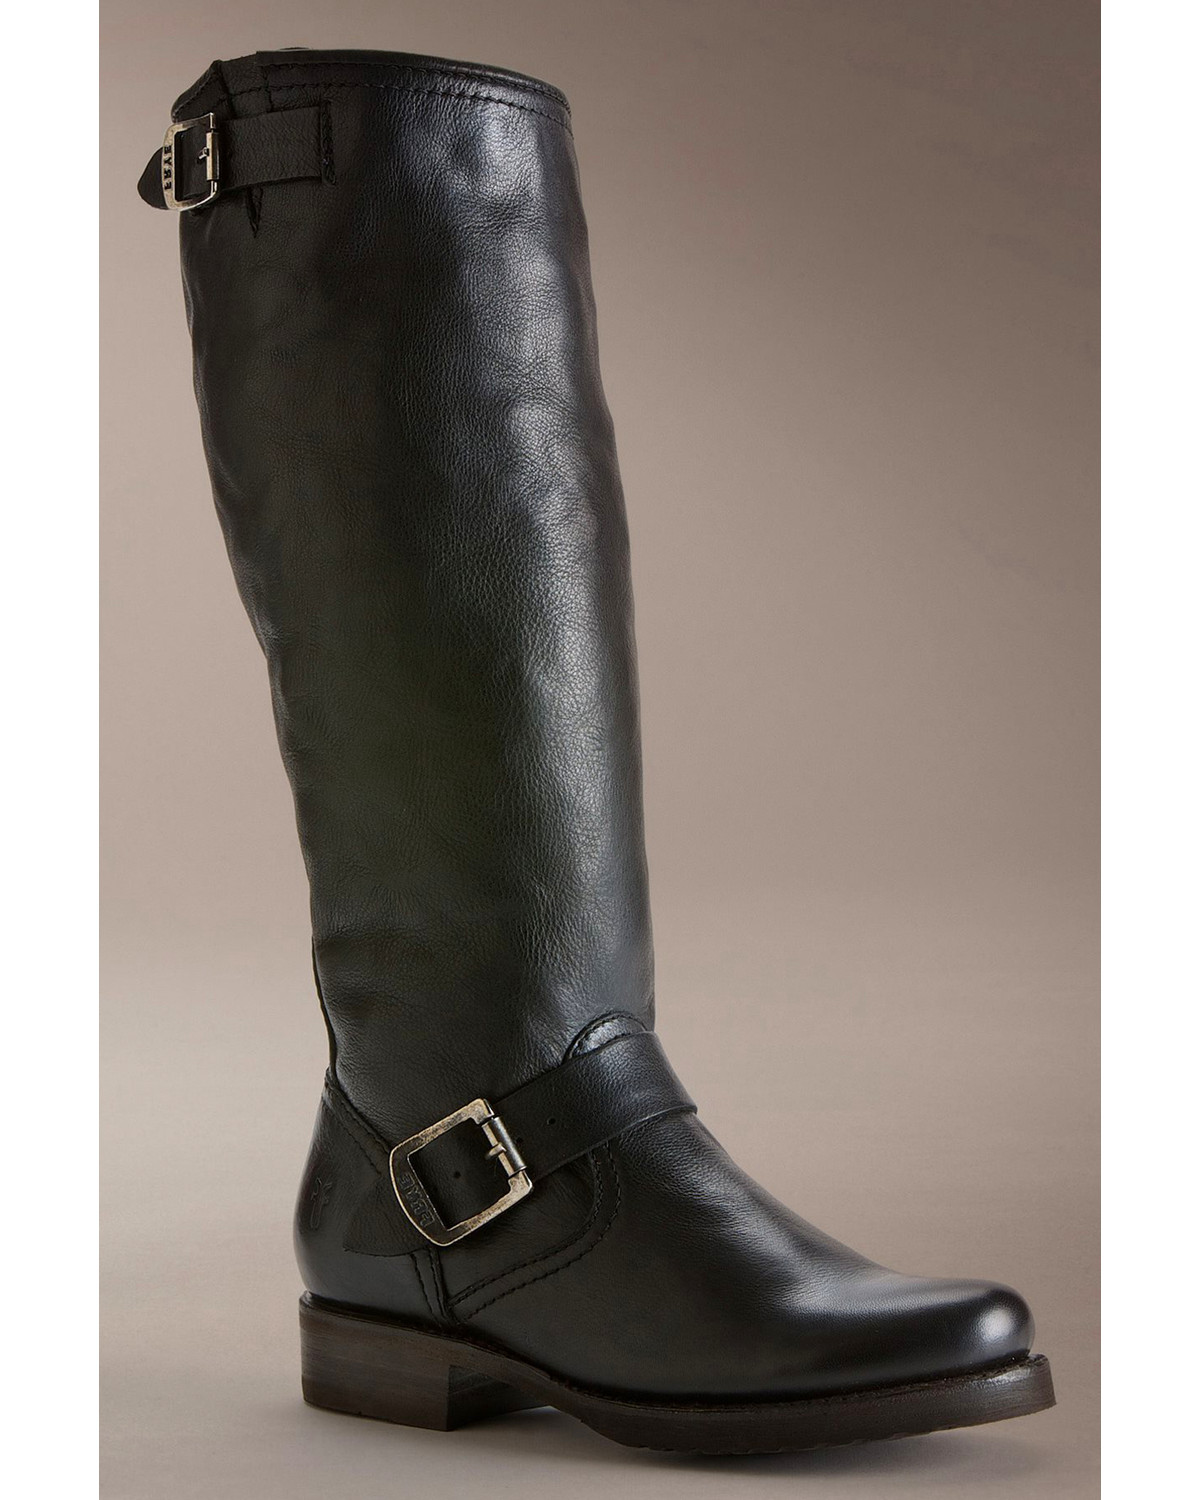 Veronica Slouch Riding Boots